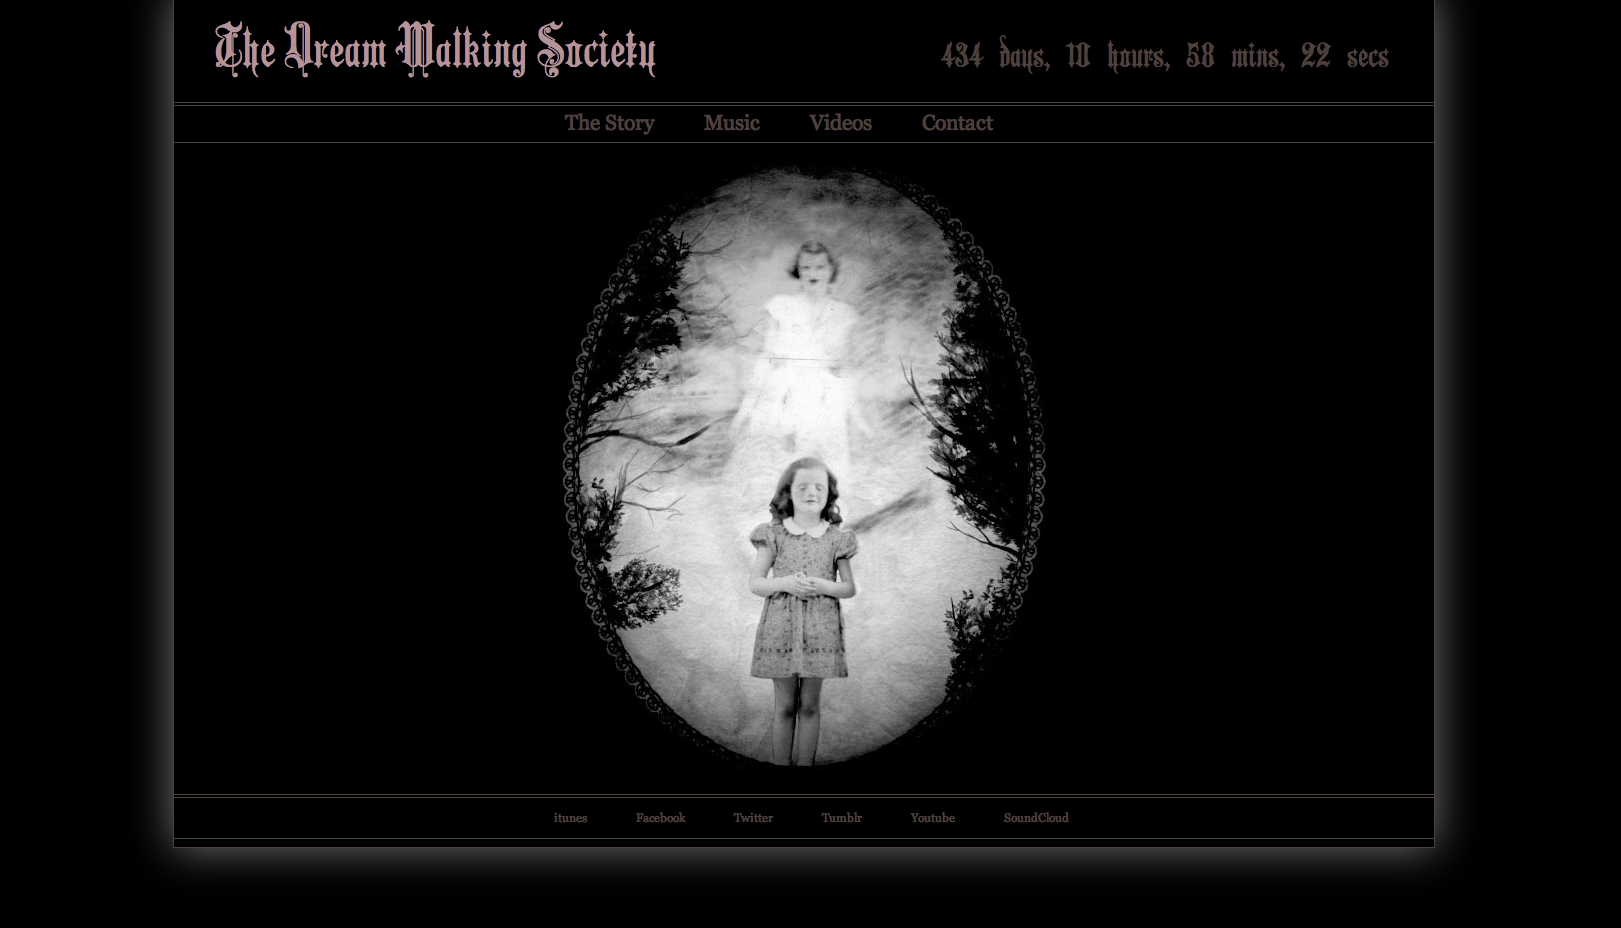 A screen shot of the dream walking society web